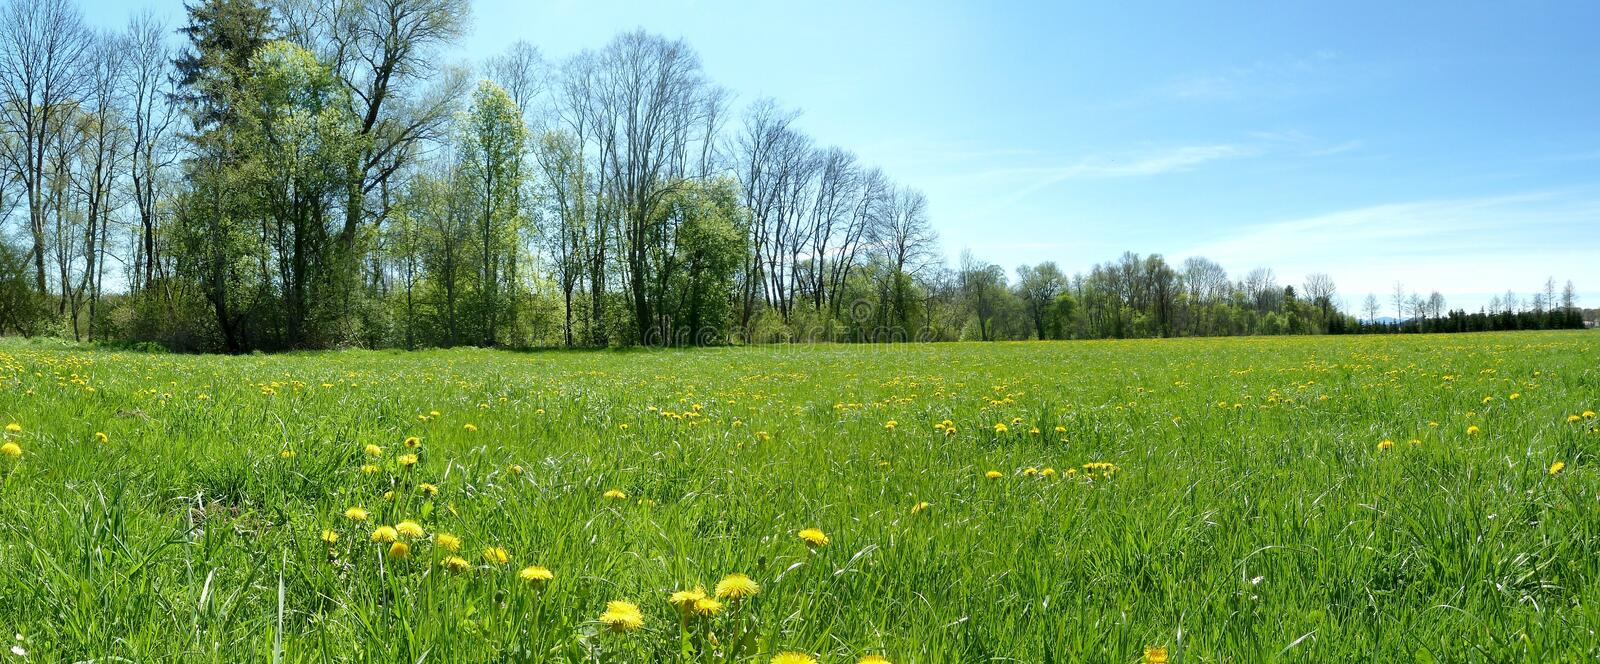 Download Spring Meadow stock image. Image of dandelions, springy - 24509023